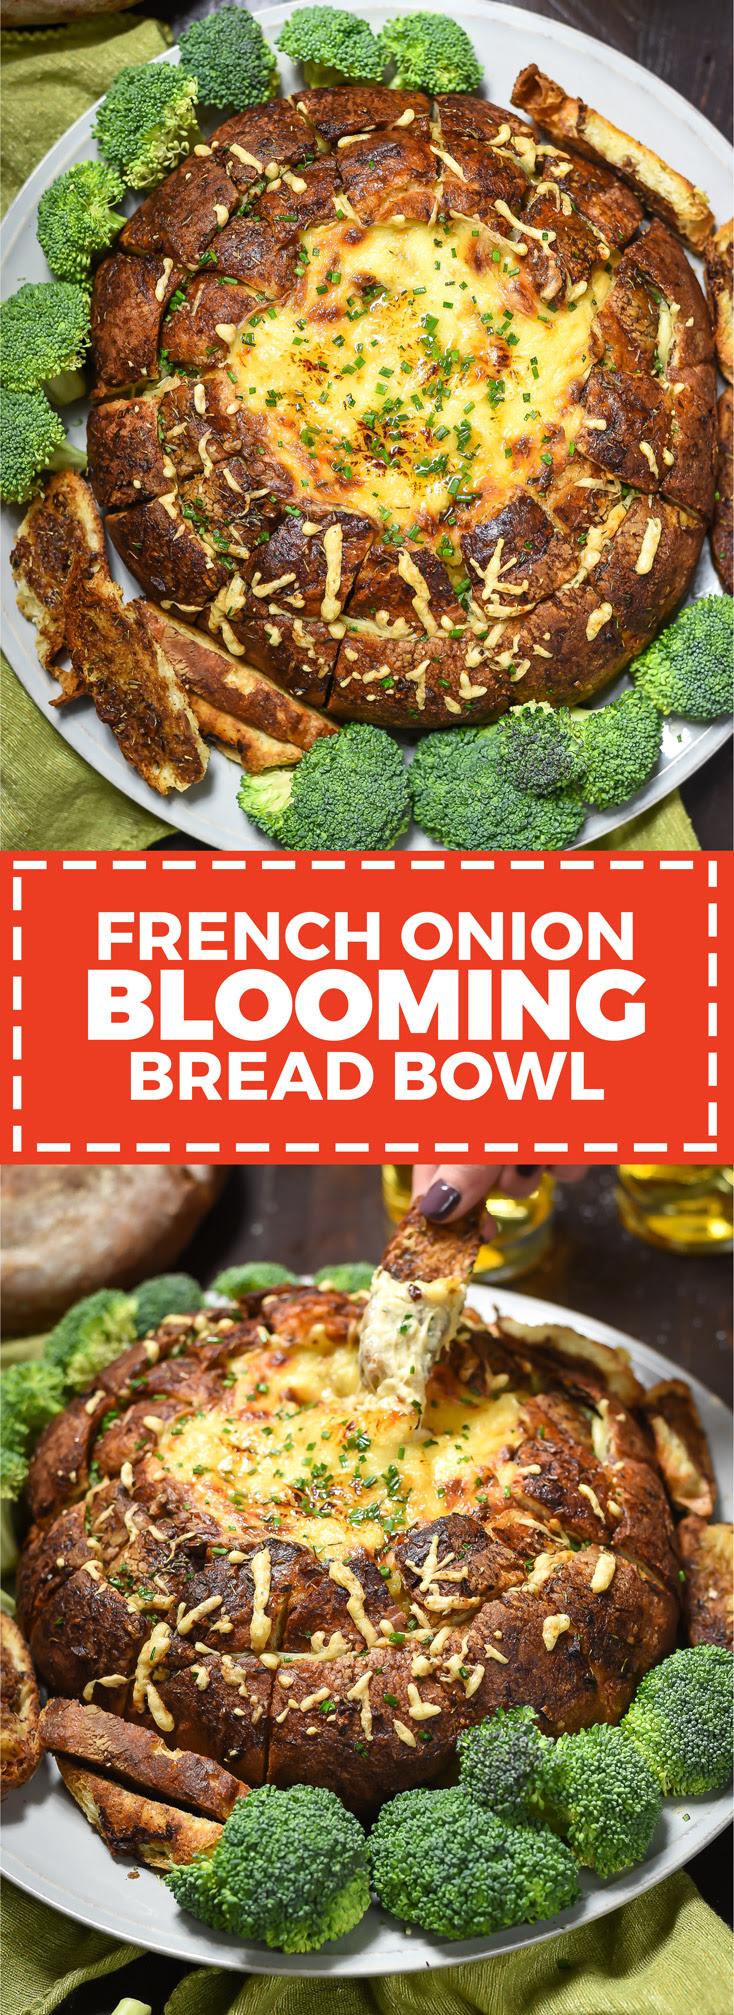 French Onion Blooming Bread Bowl - Host The Toast